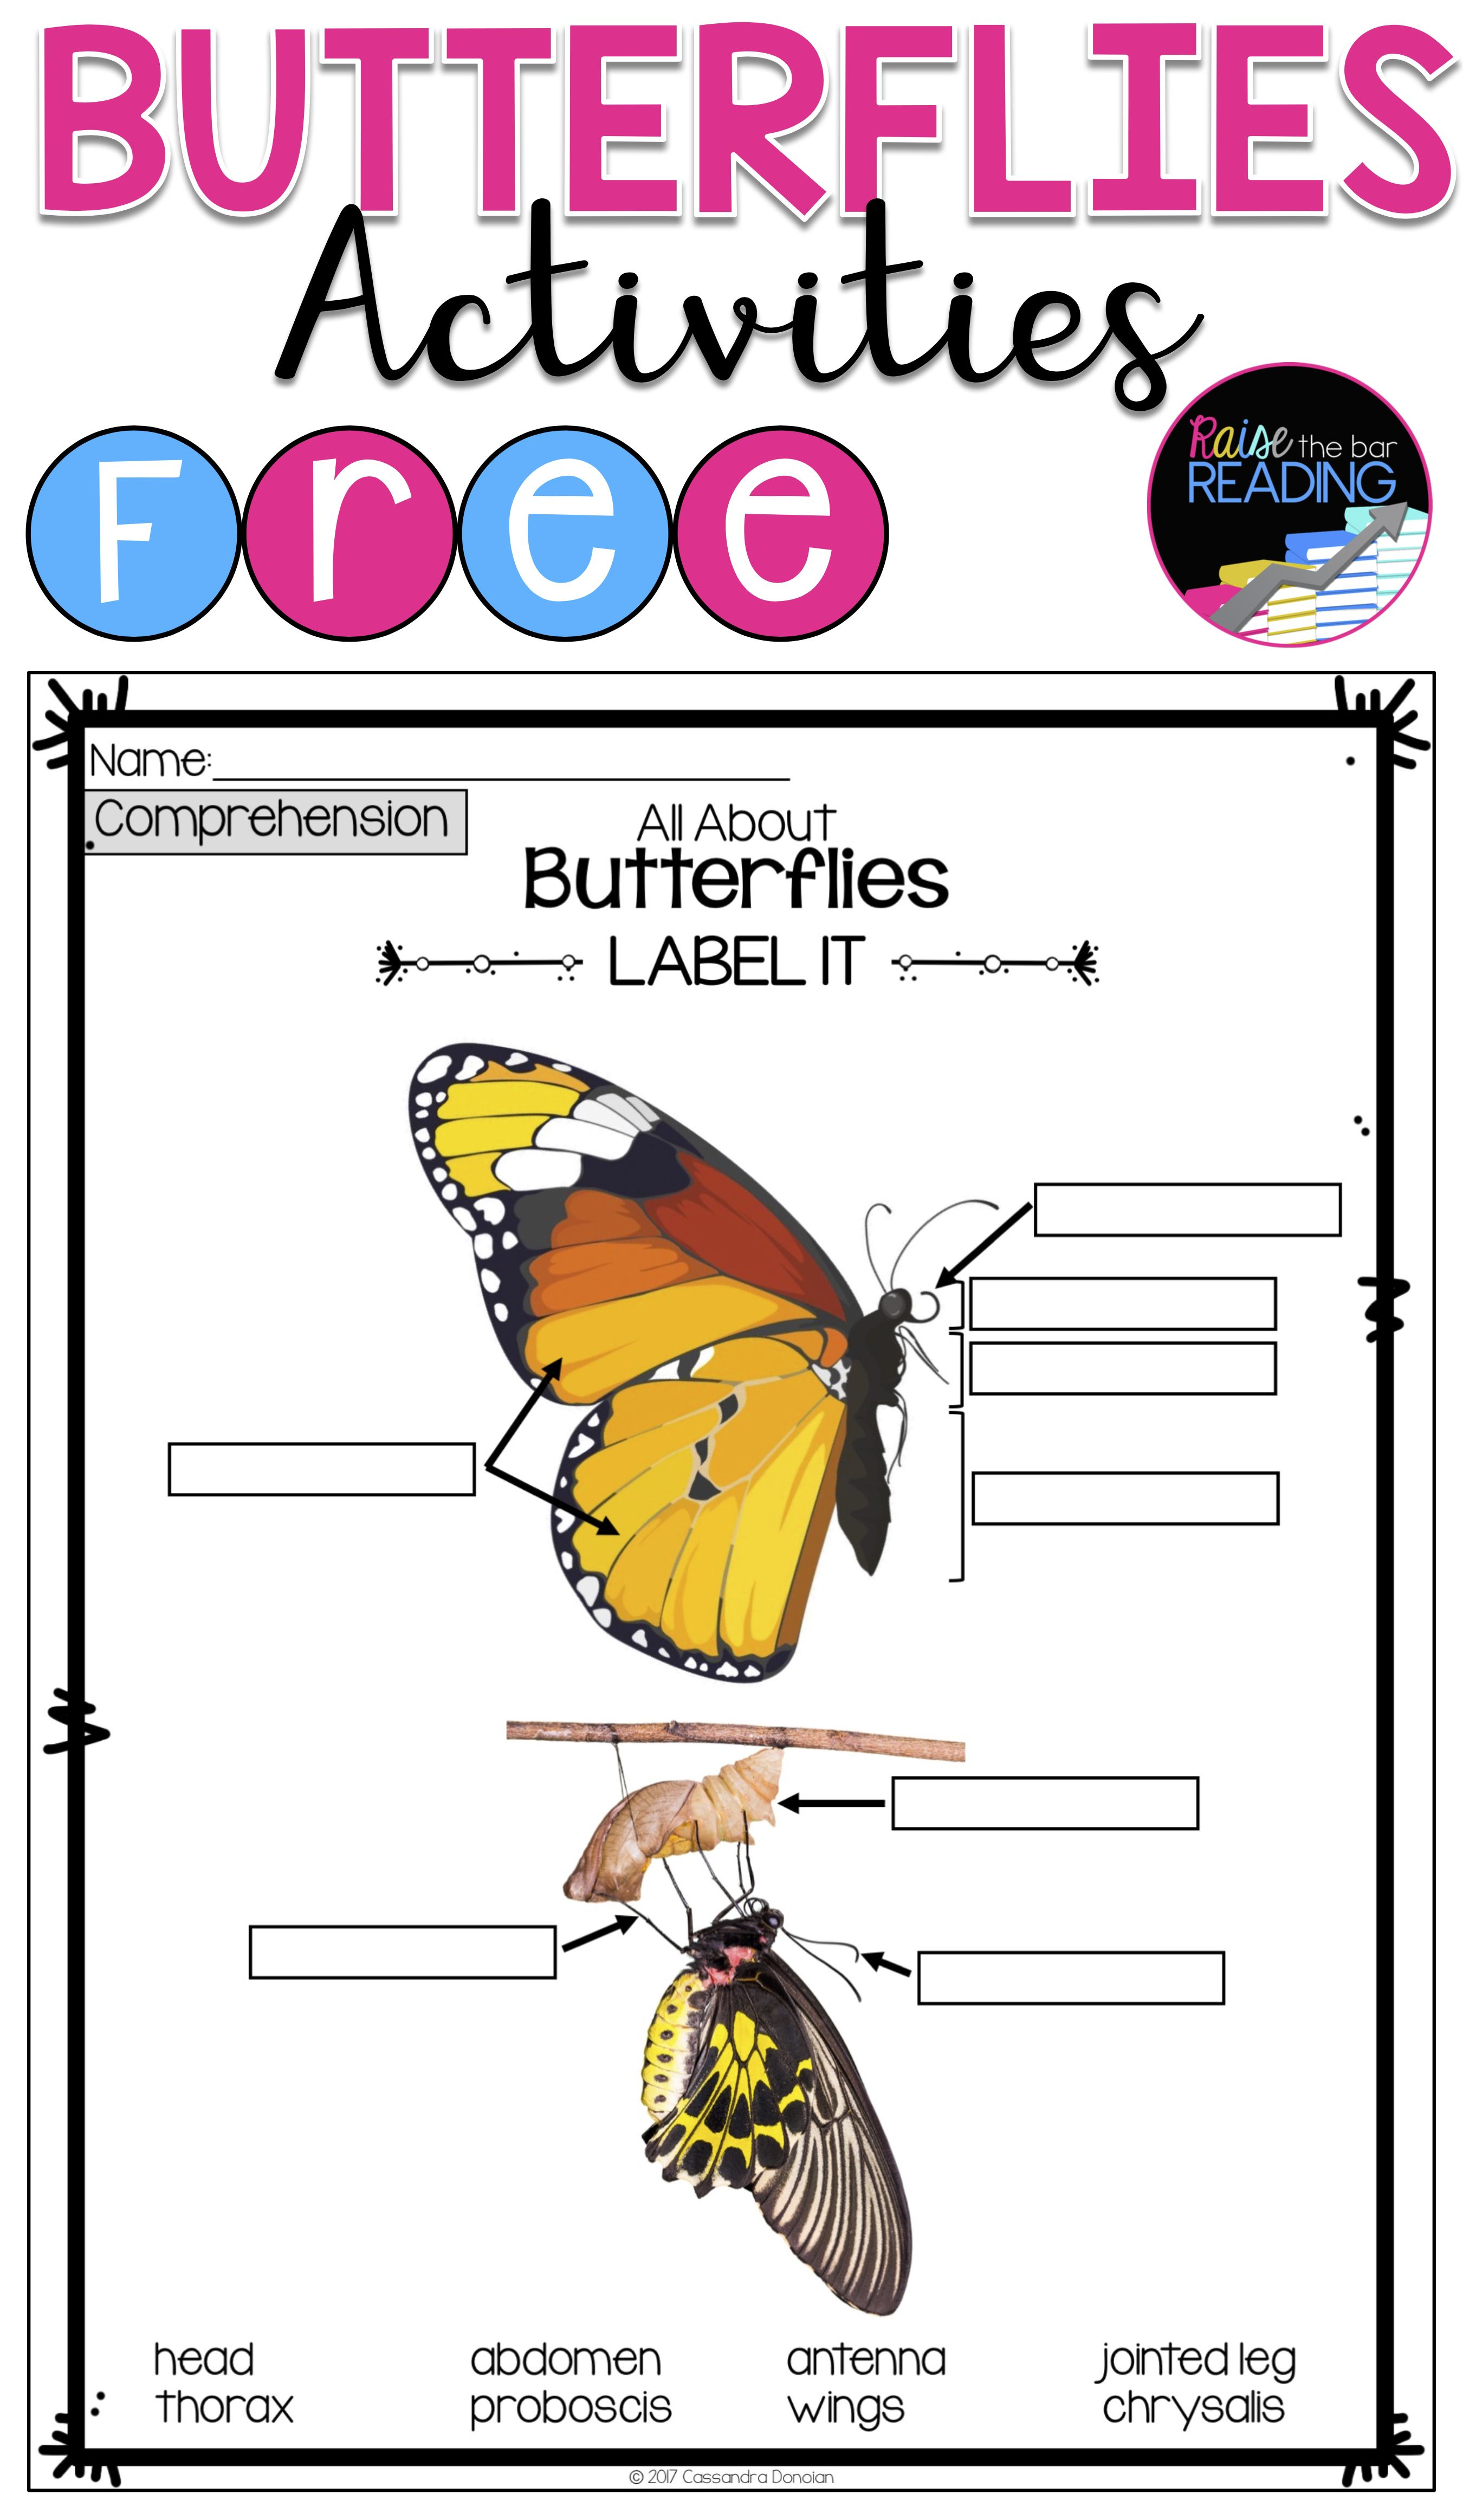 Free Butterflies Activities Insects Unit Or Informational Text Activities Butterflies Activities Informational Texts Activities Insect Unit [ 4650 x 2700 Pixel ]